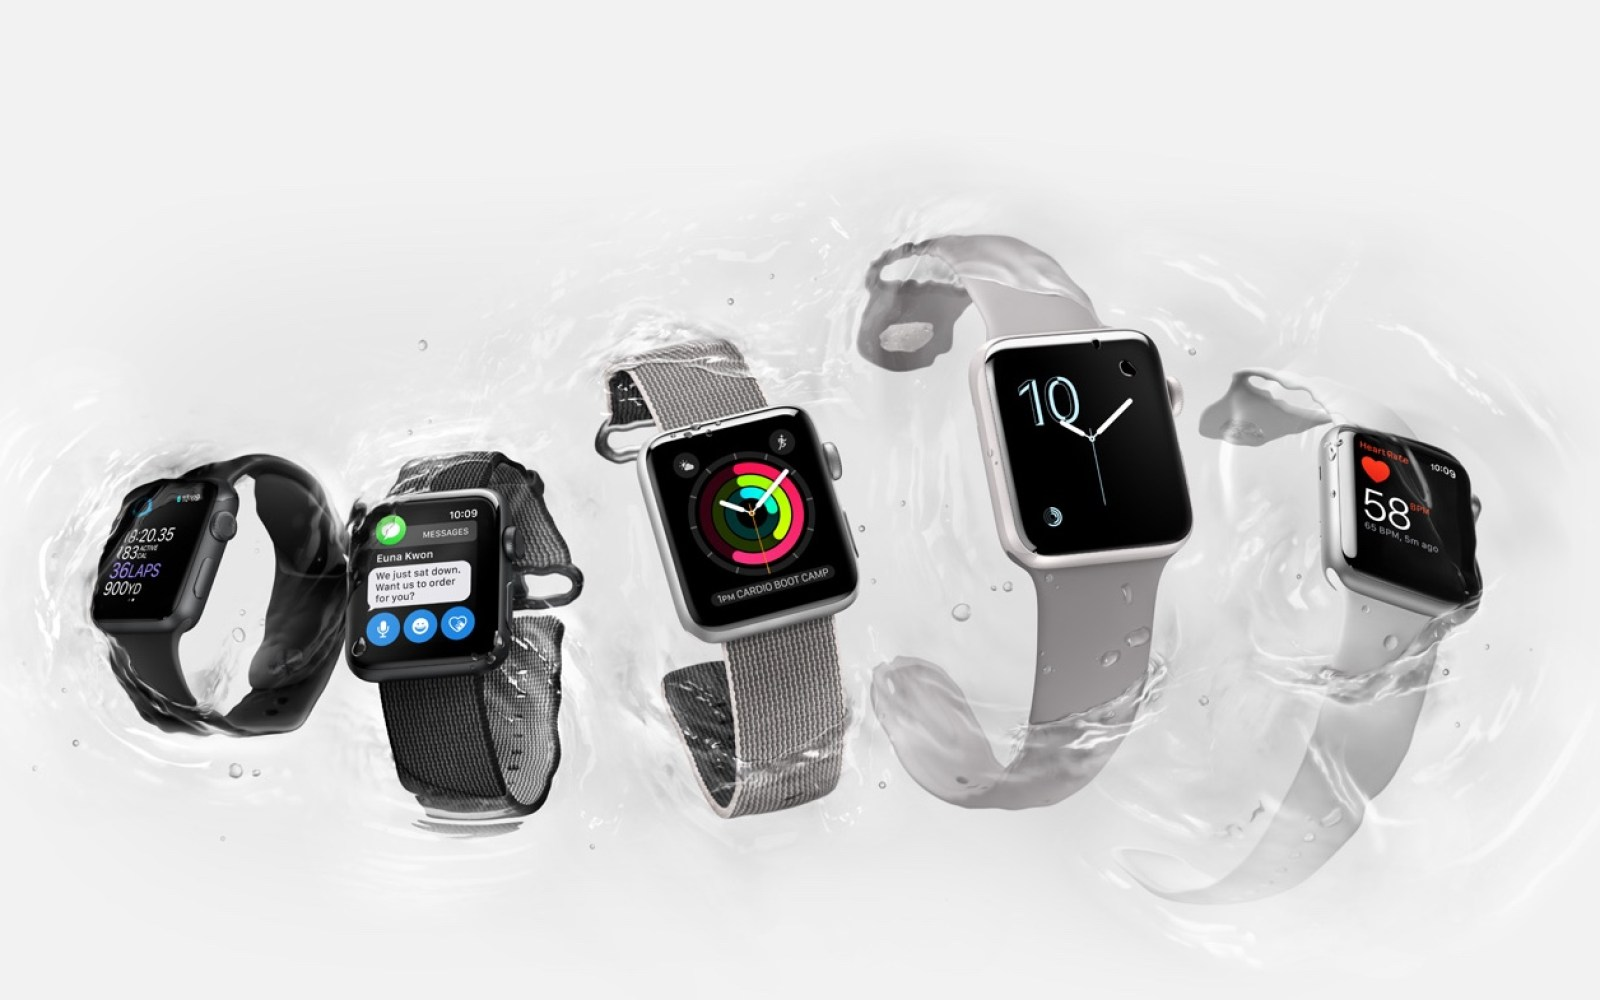 Report: New Apple Watch coming in third quarter of 2017, main focus on better battery life